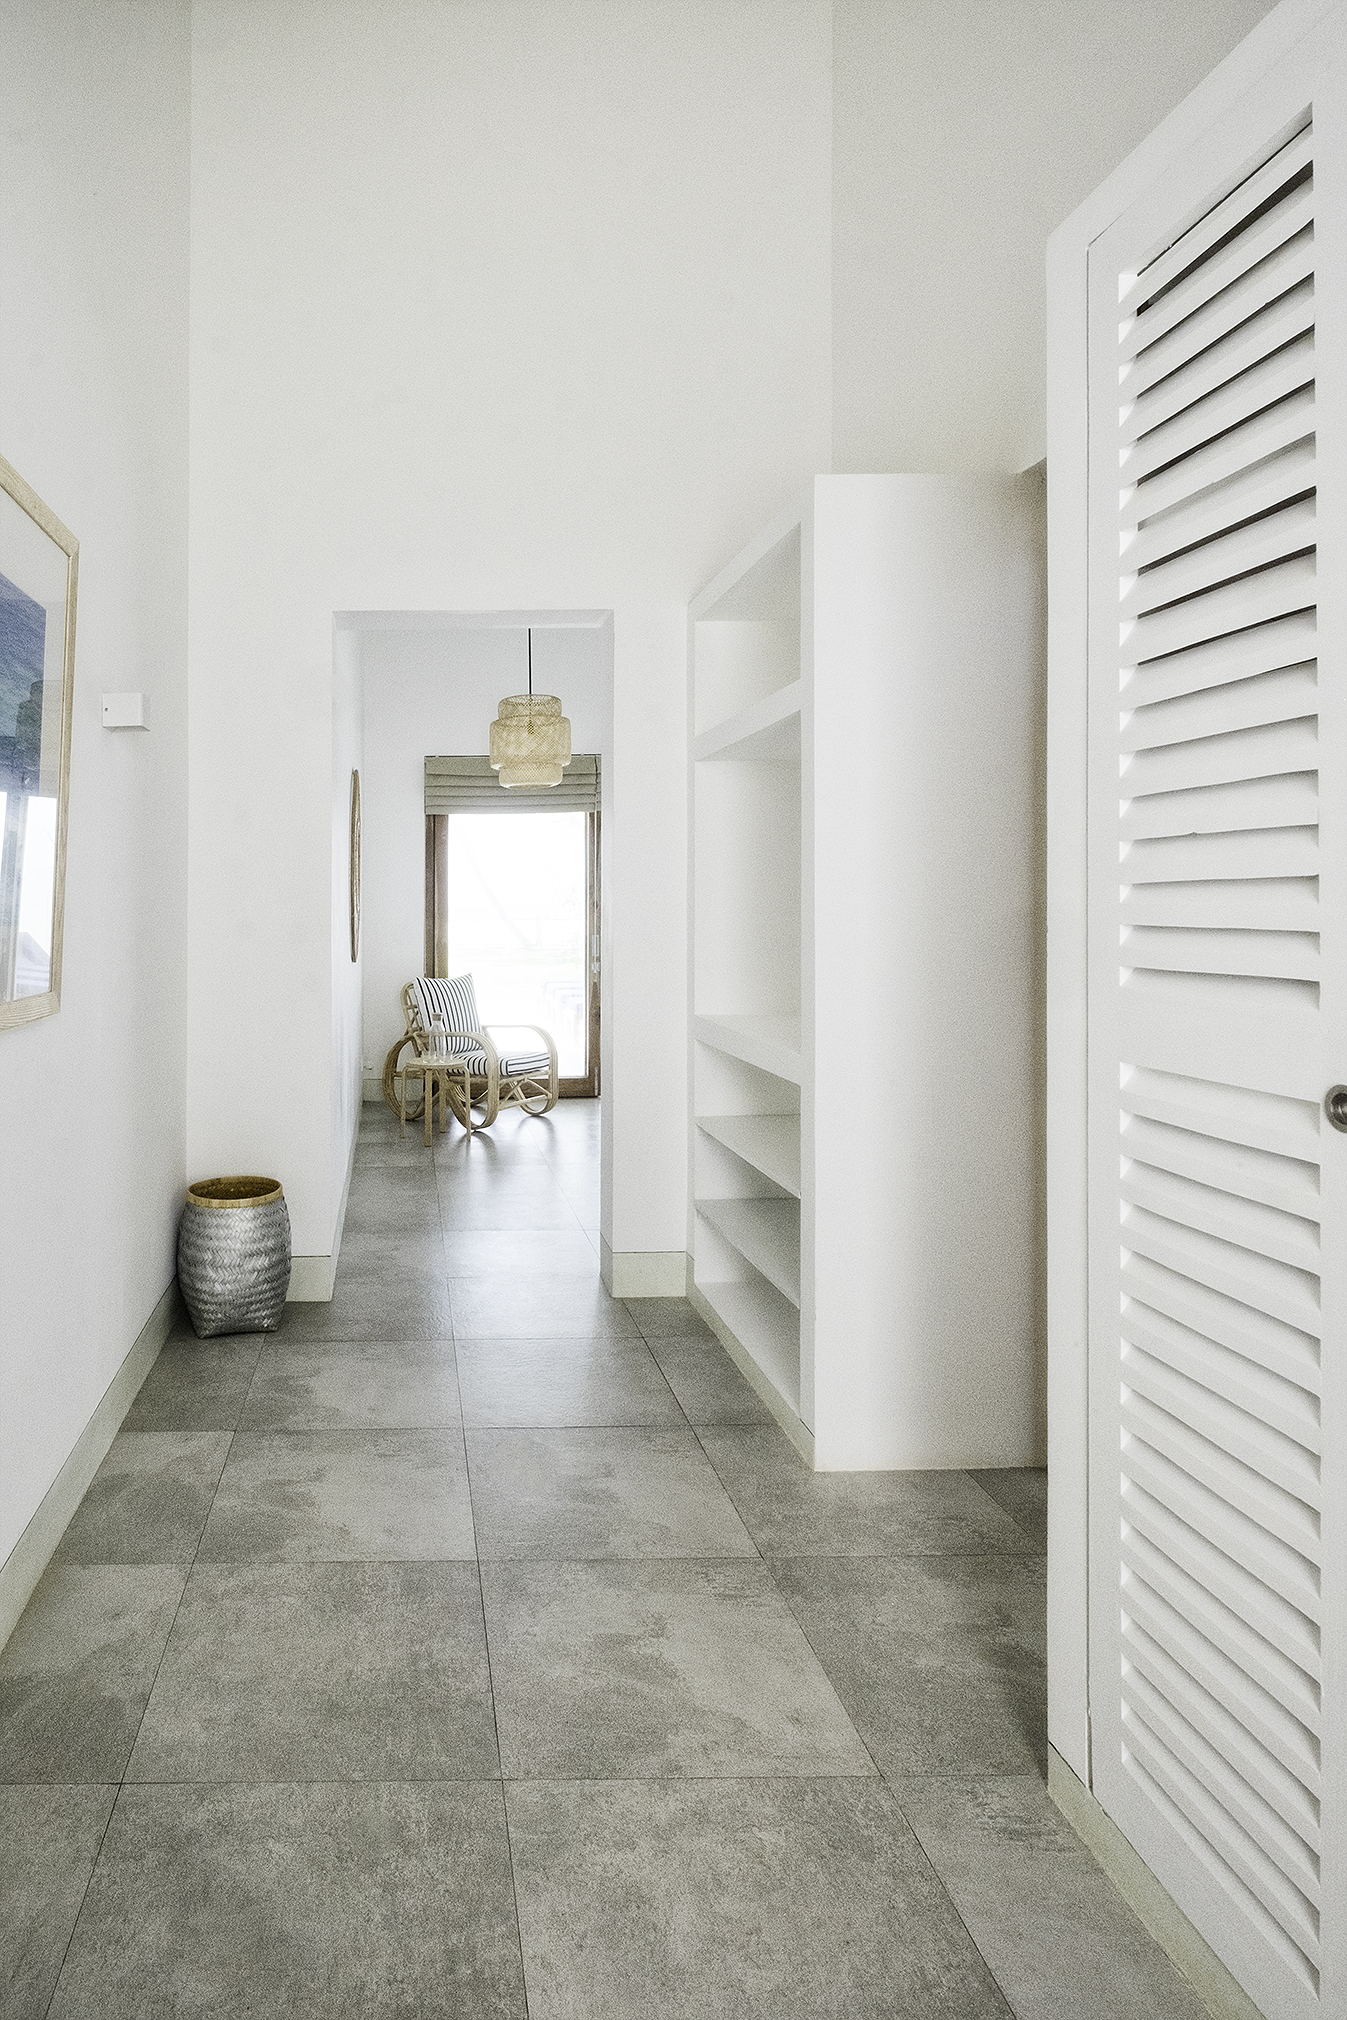 Walk-in warbrobe and entrance to Bedroom 2 with ocean views